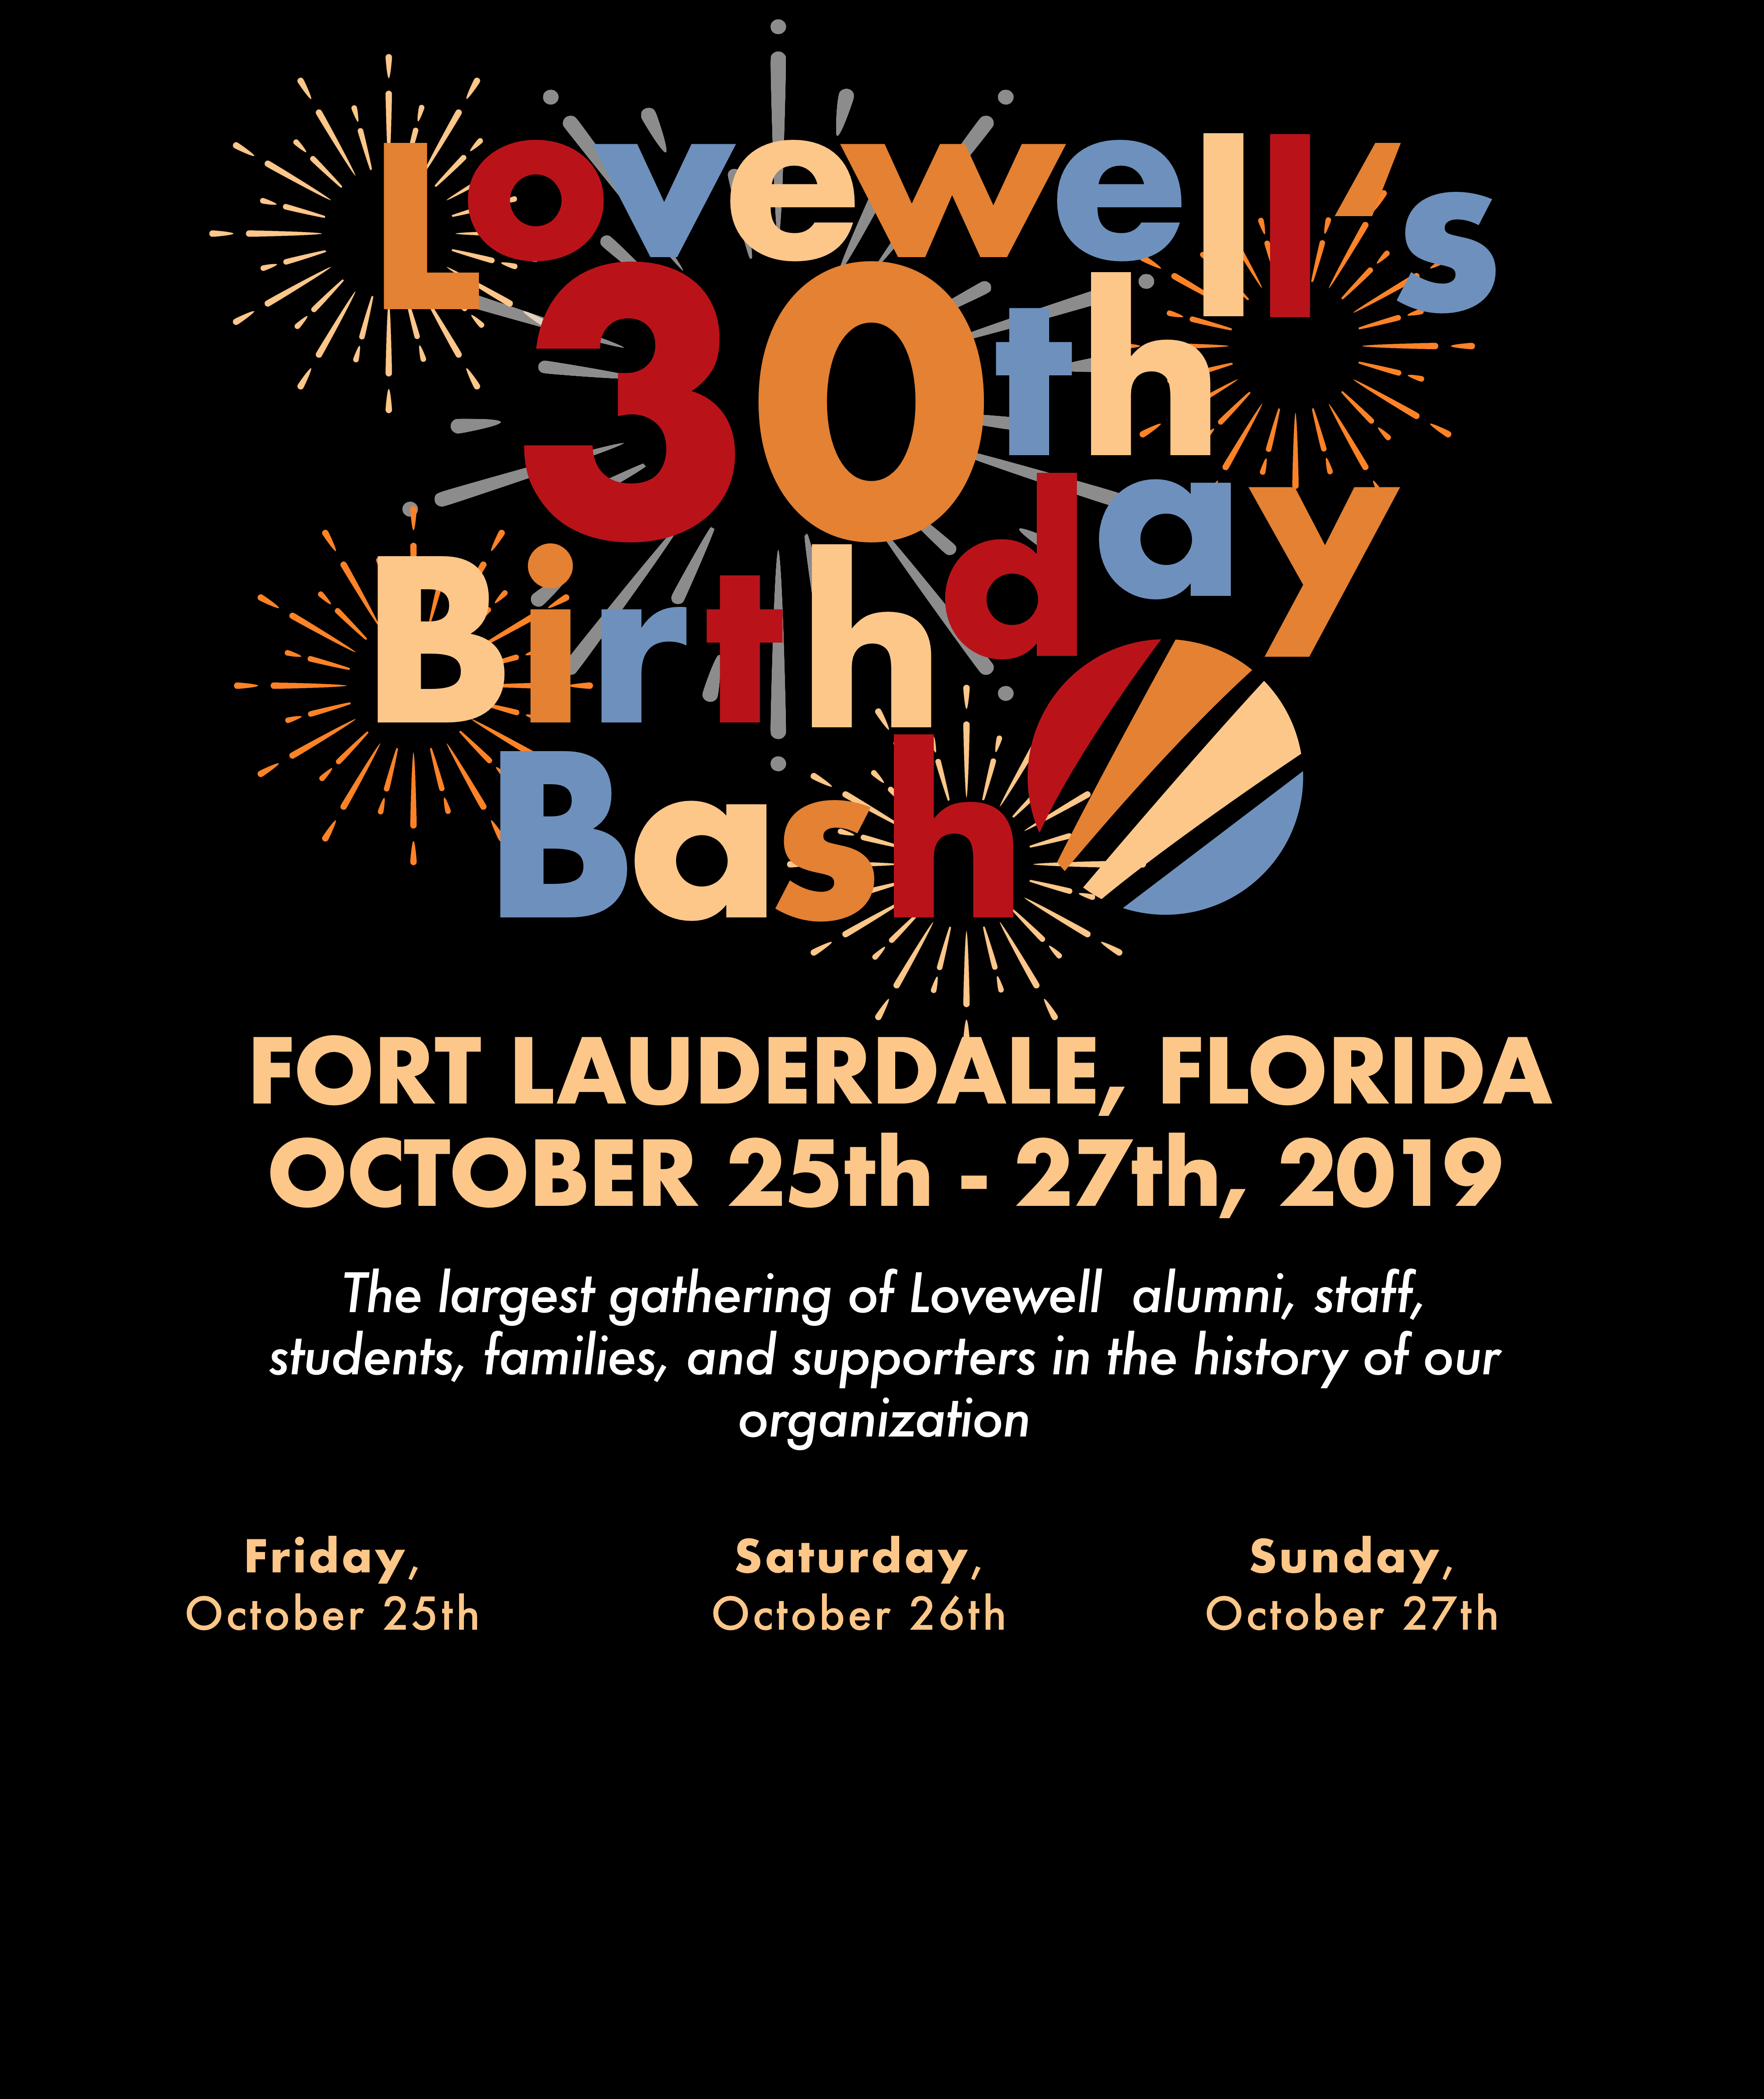 October 25th-27th, 2019 Fort Lauderdale